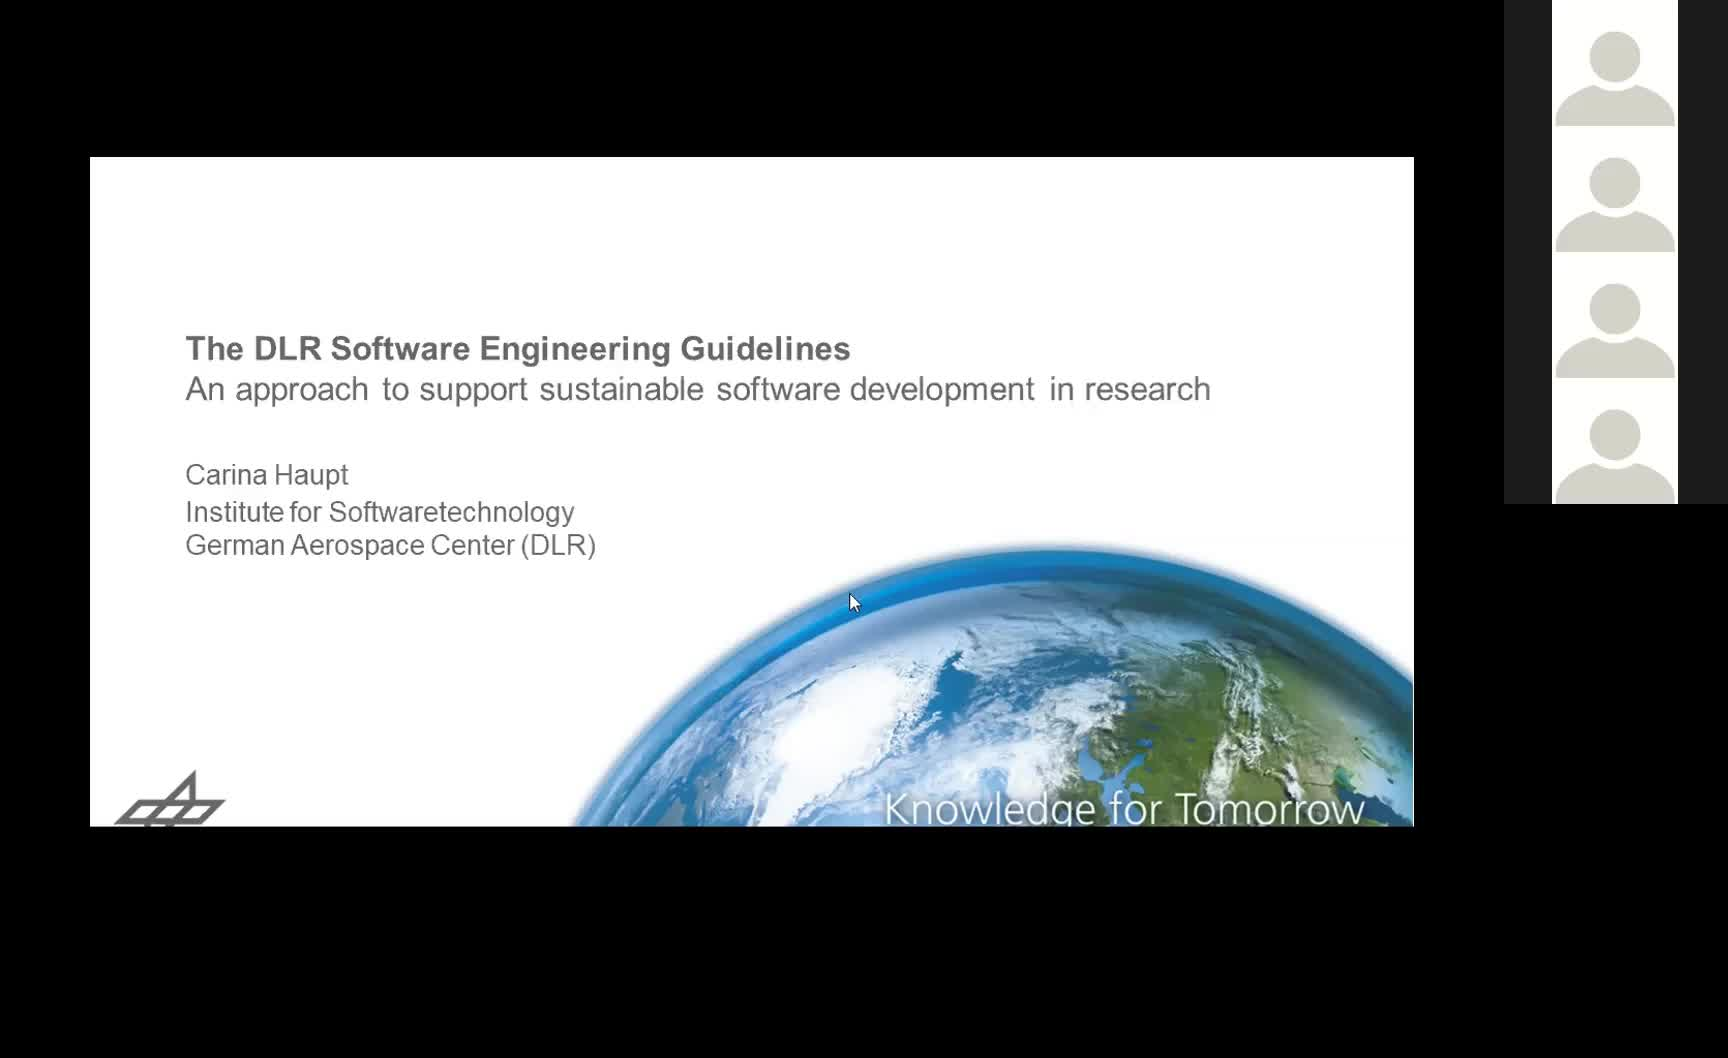 The DLR Software Engineering Guidelines preview image